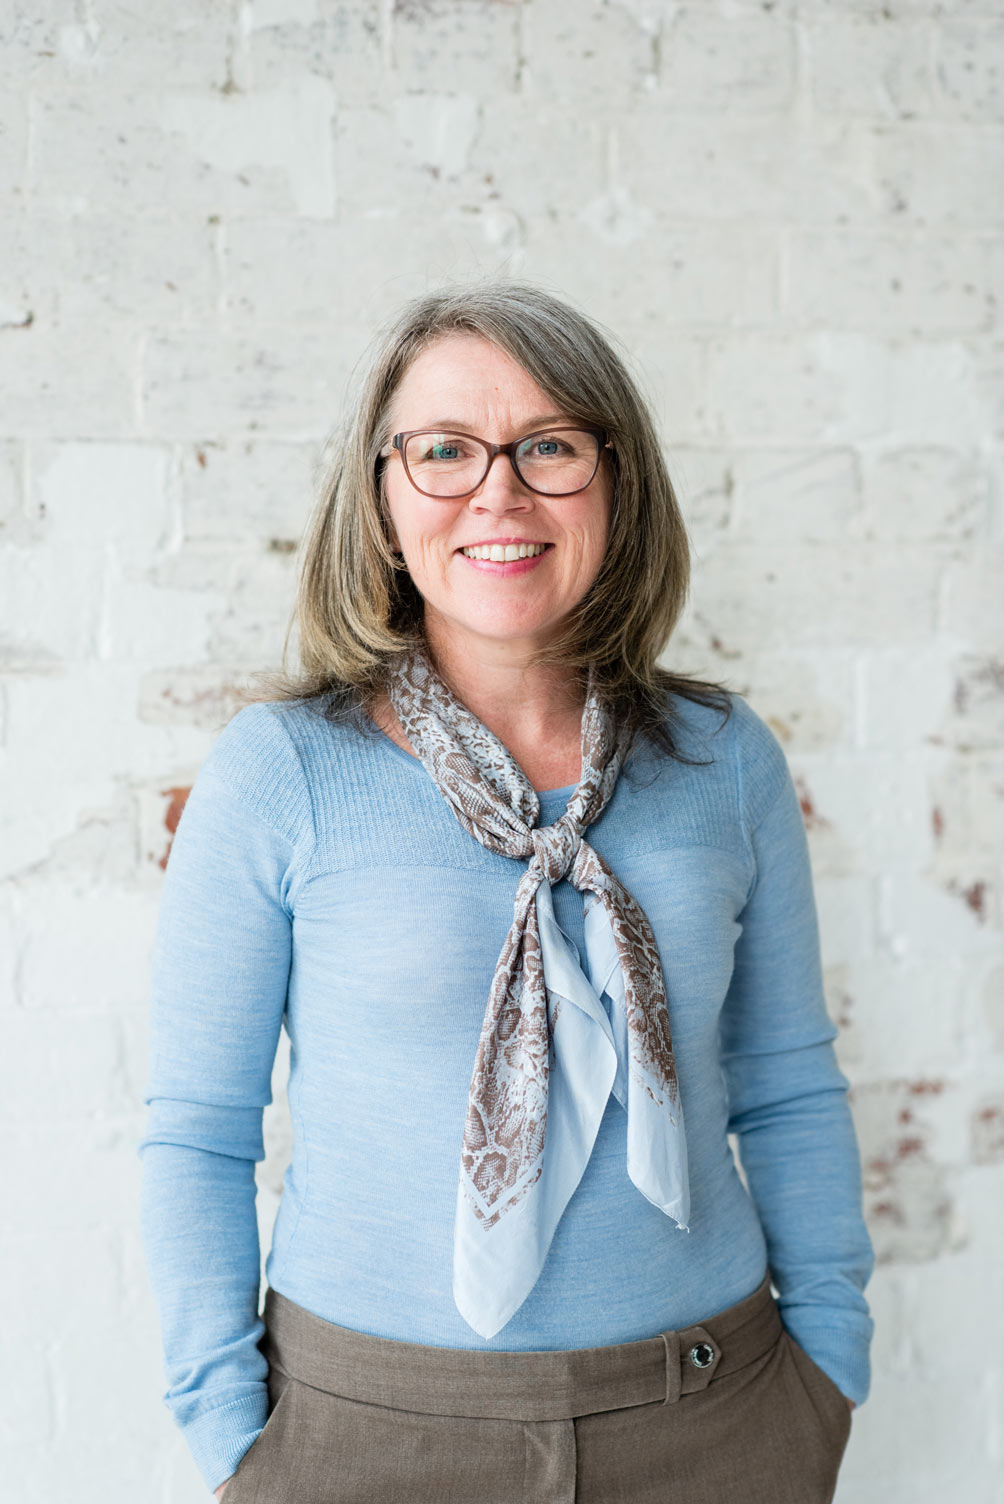 A portrait shot of Rebecca Hughes standing and smiling at the camera.